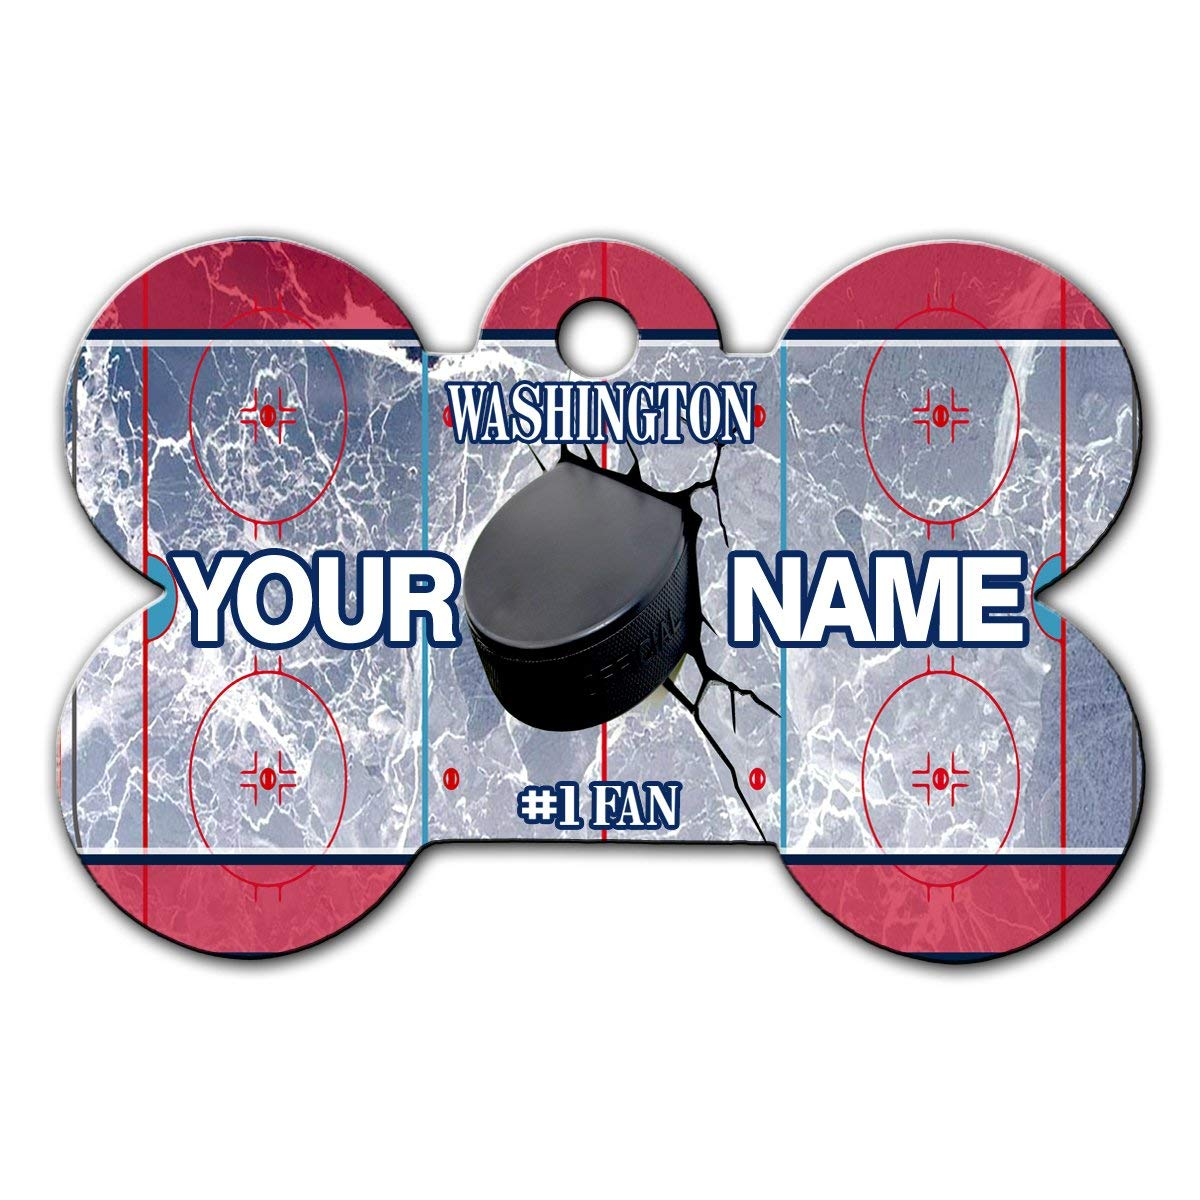 BRGiftShop Personalize Your Own Hockey Team Washington Bone Shaped Metal Pet ID Tag with Contact Information